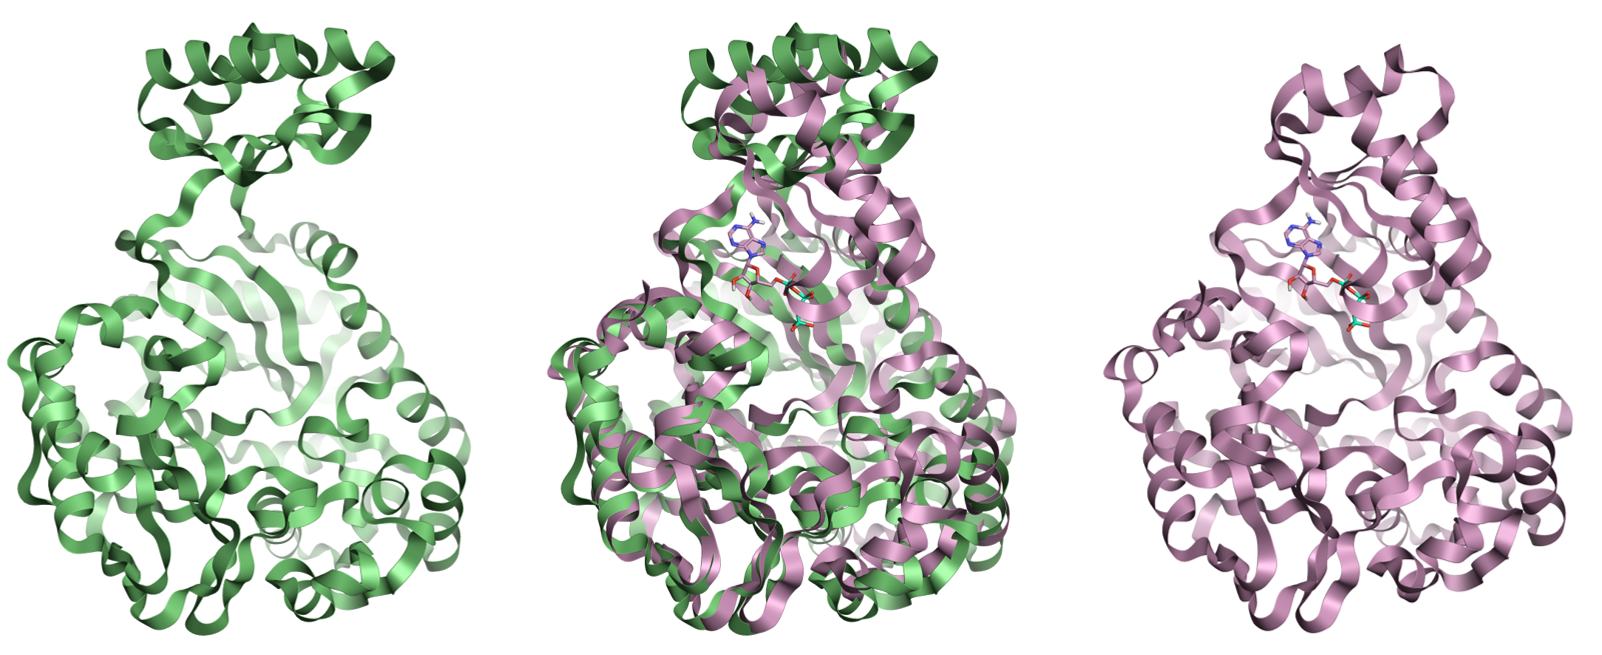 Example protein movements upon ATPbinding for the biotin carboxylase subunit of pyruvate carboxylase using crystal structures